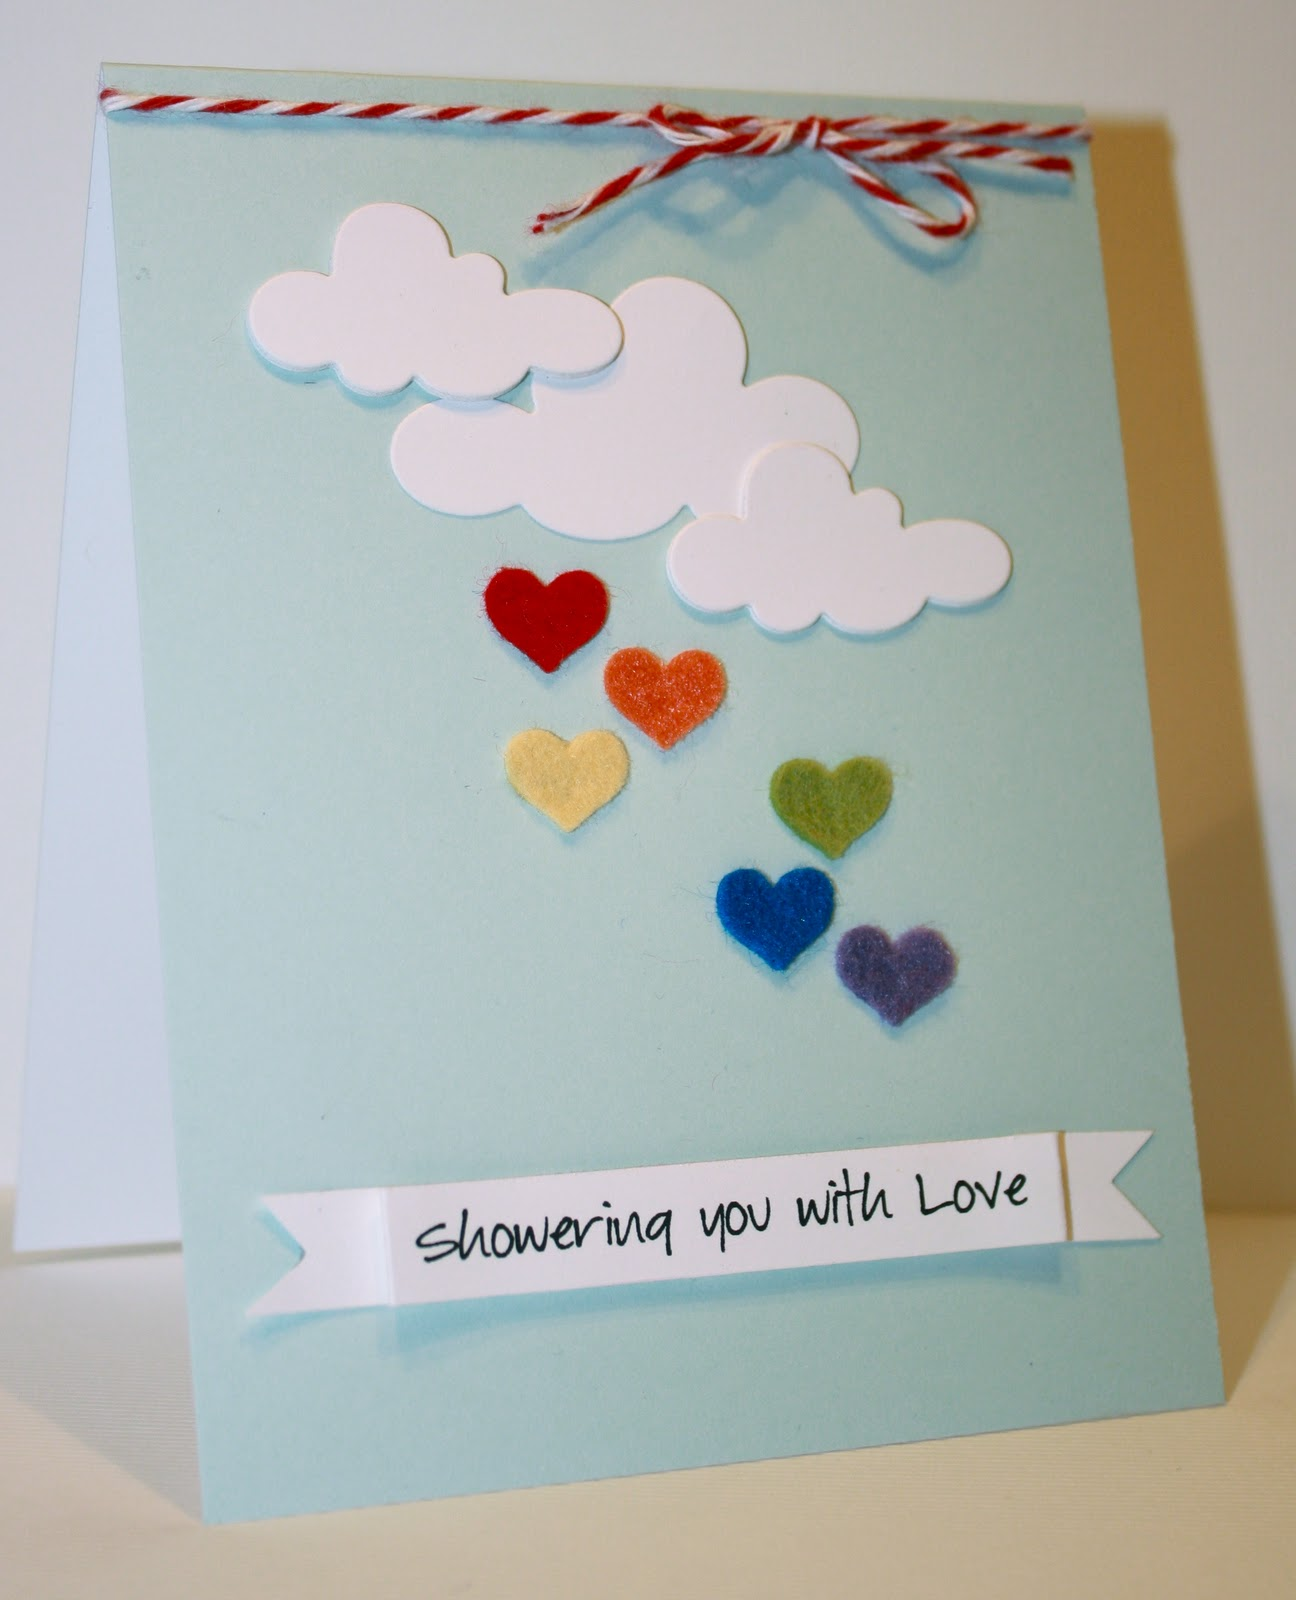 Awesome Card Making Ideas Pinterest Part - 6: ... Lately Iu0027ve Been Pinning A Lot Of Things On Pinterest Involving Hearts,  Rainbows, And Clouds, So Thatu0027s Where I Drew My Inspiration From For This  Card.